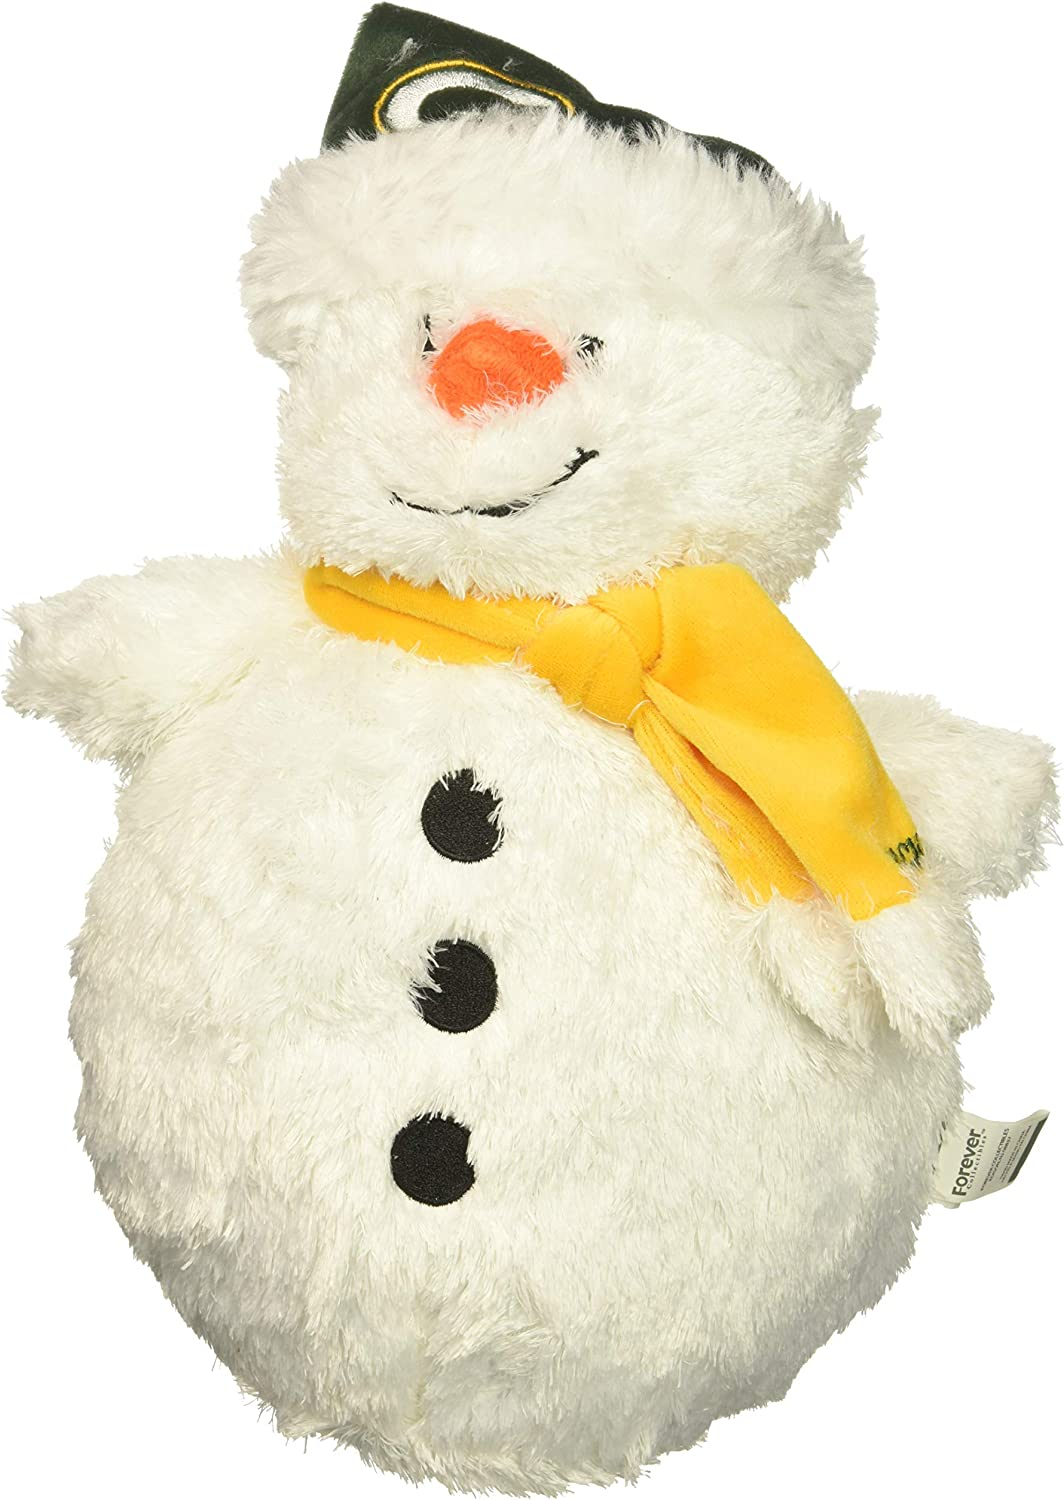 NFL Green Bay Packers 2012 10 Team Heavy Sitting Snowman, Green